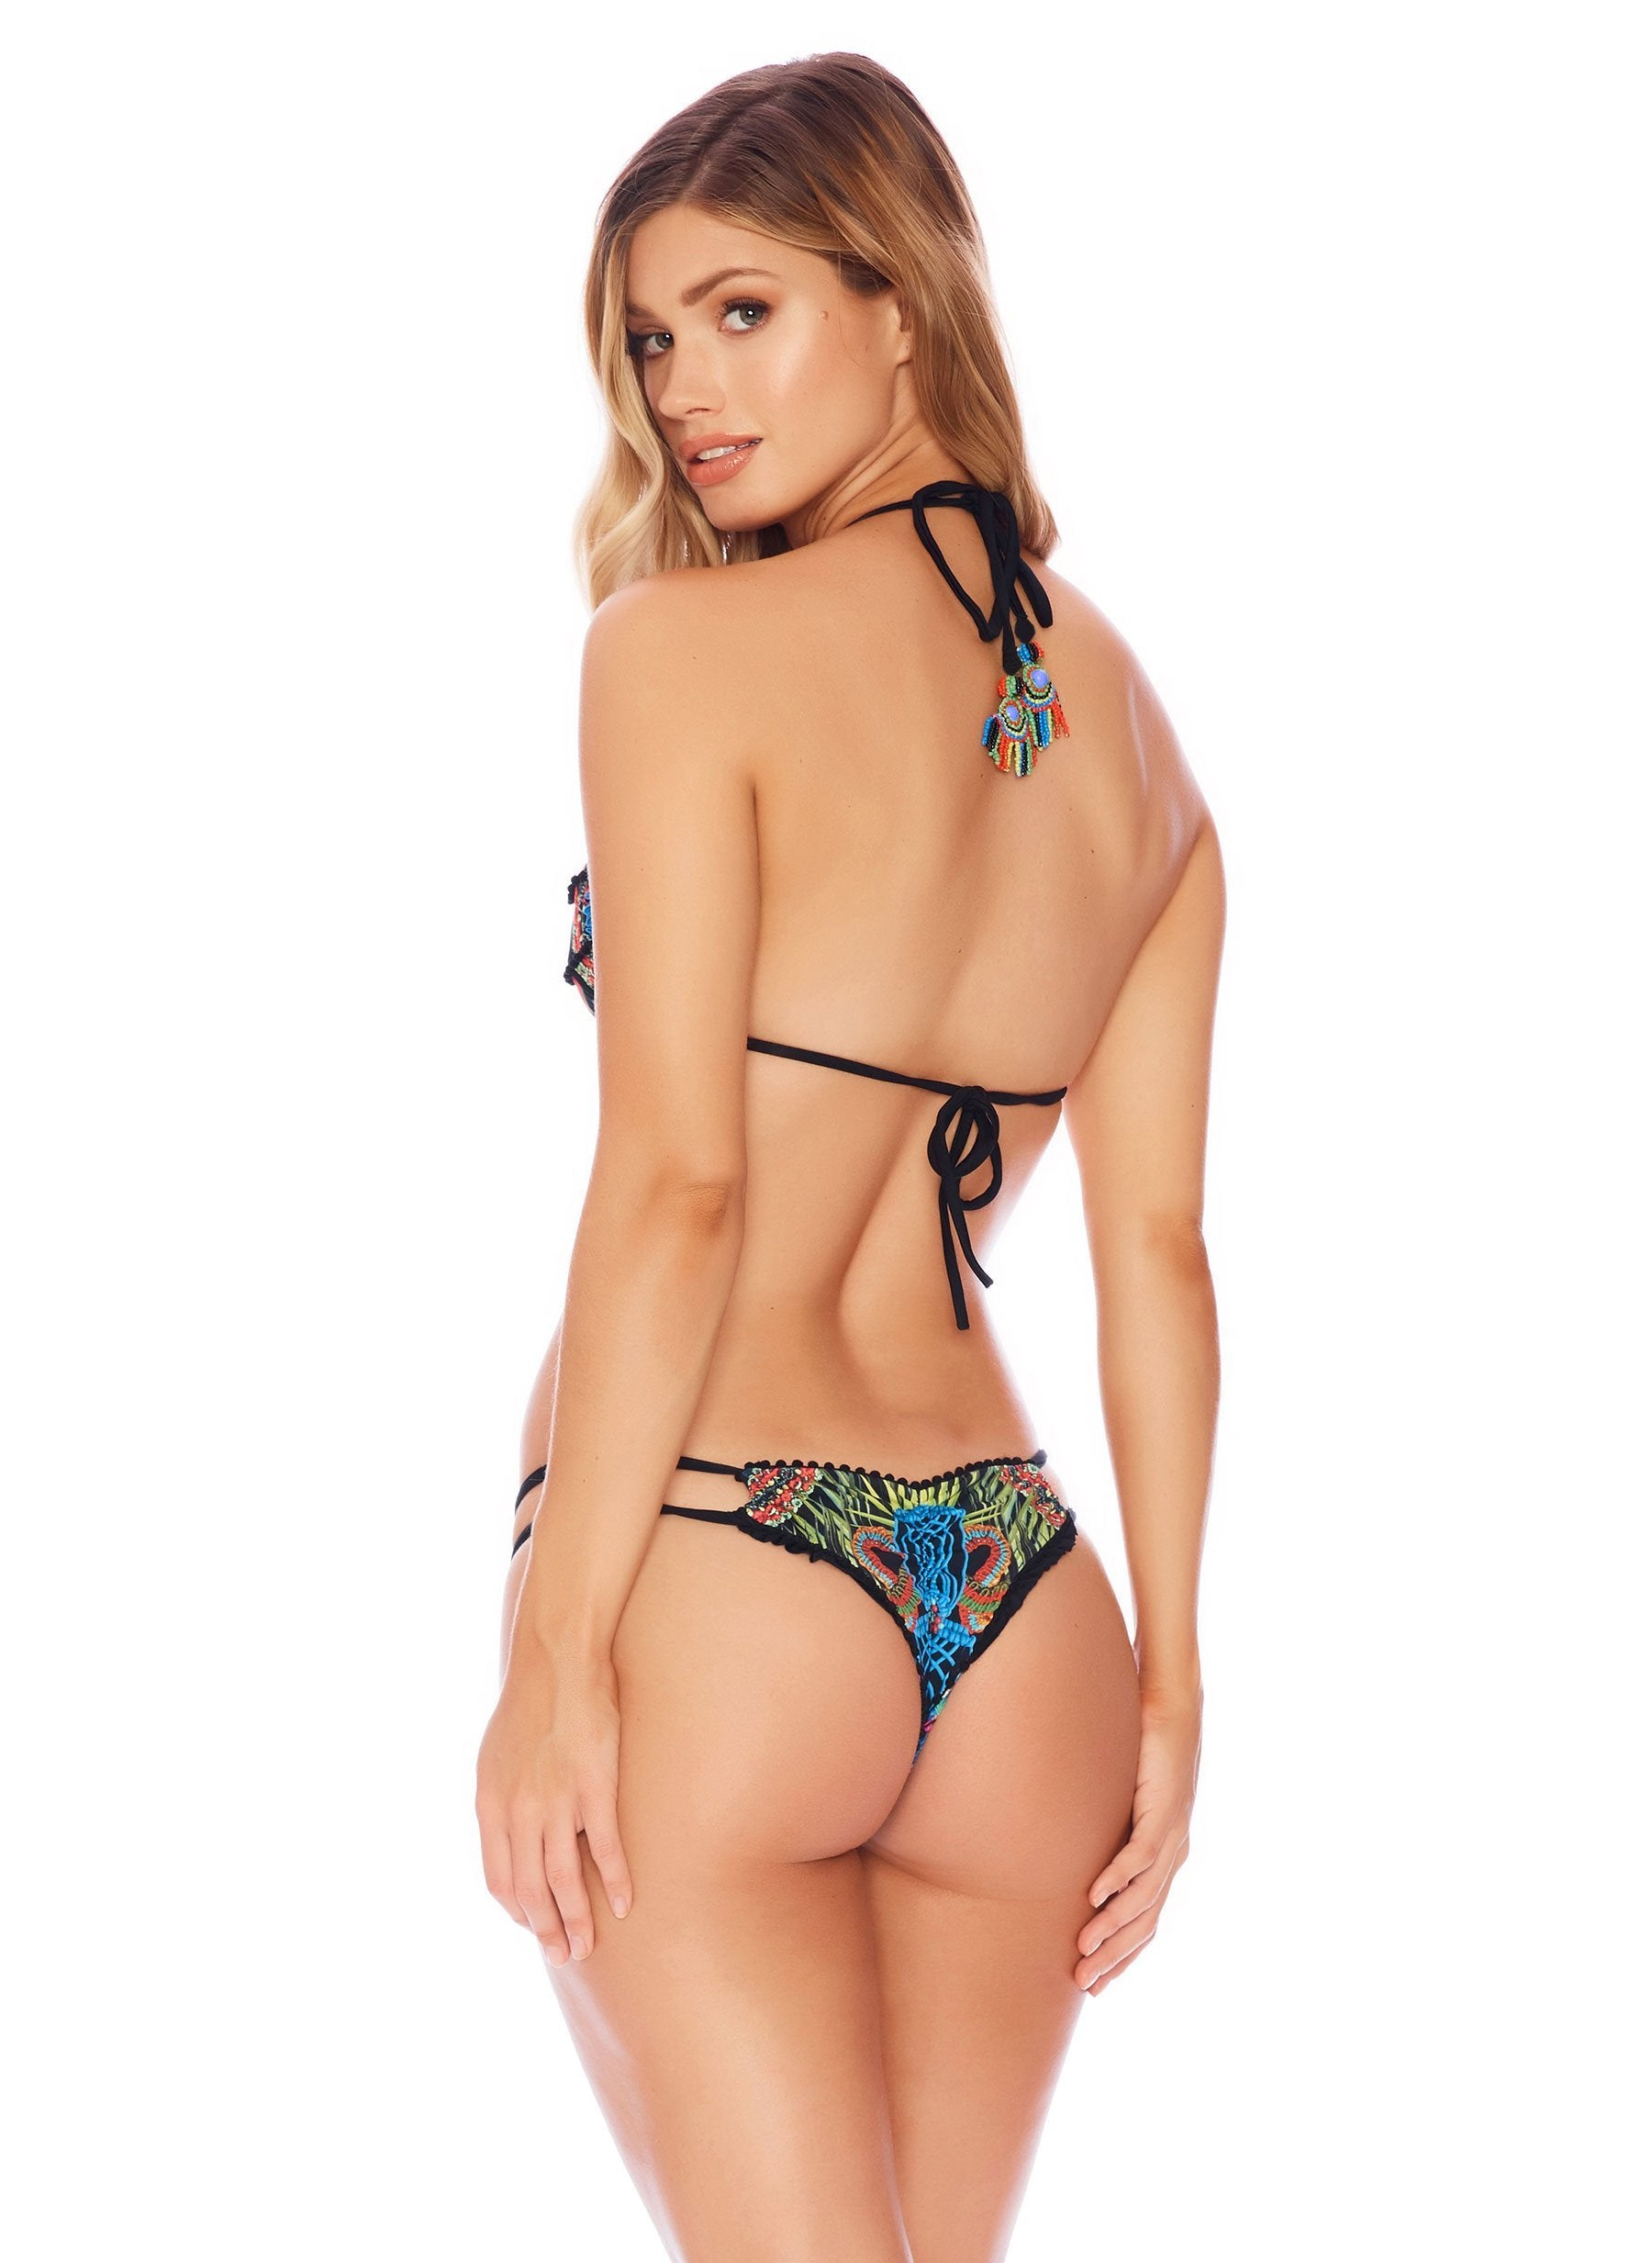 African Jewel Ruffle - Semi Brazilian - Salty Mermaid Swim